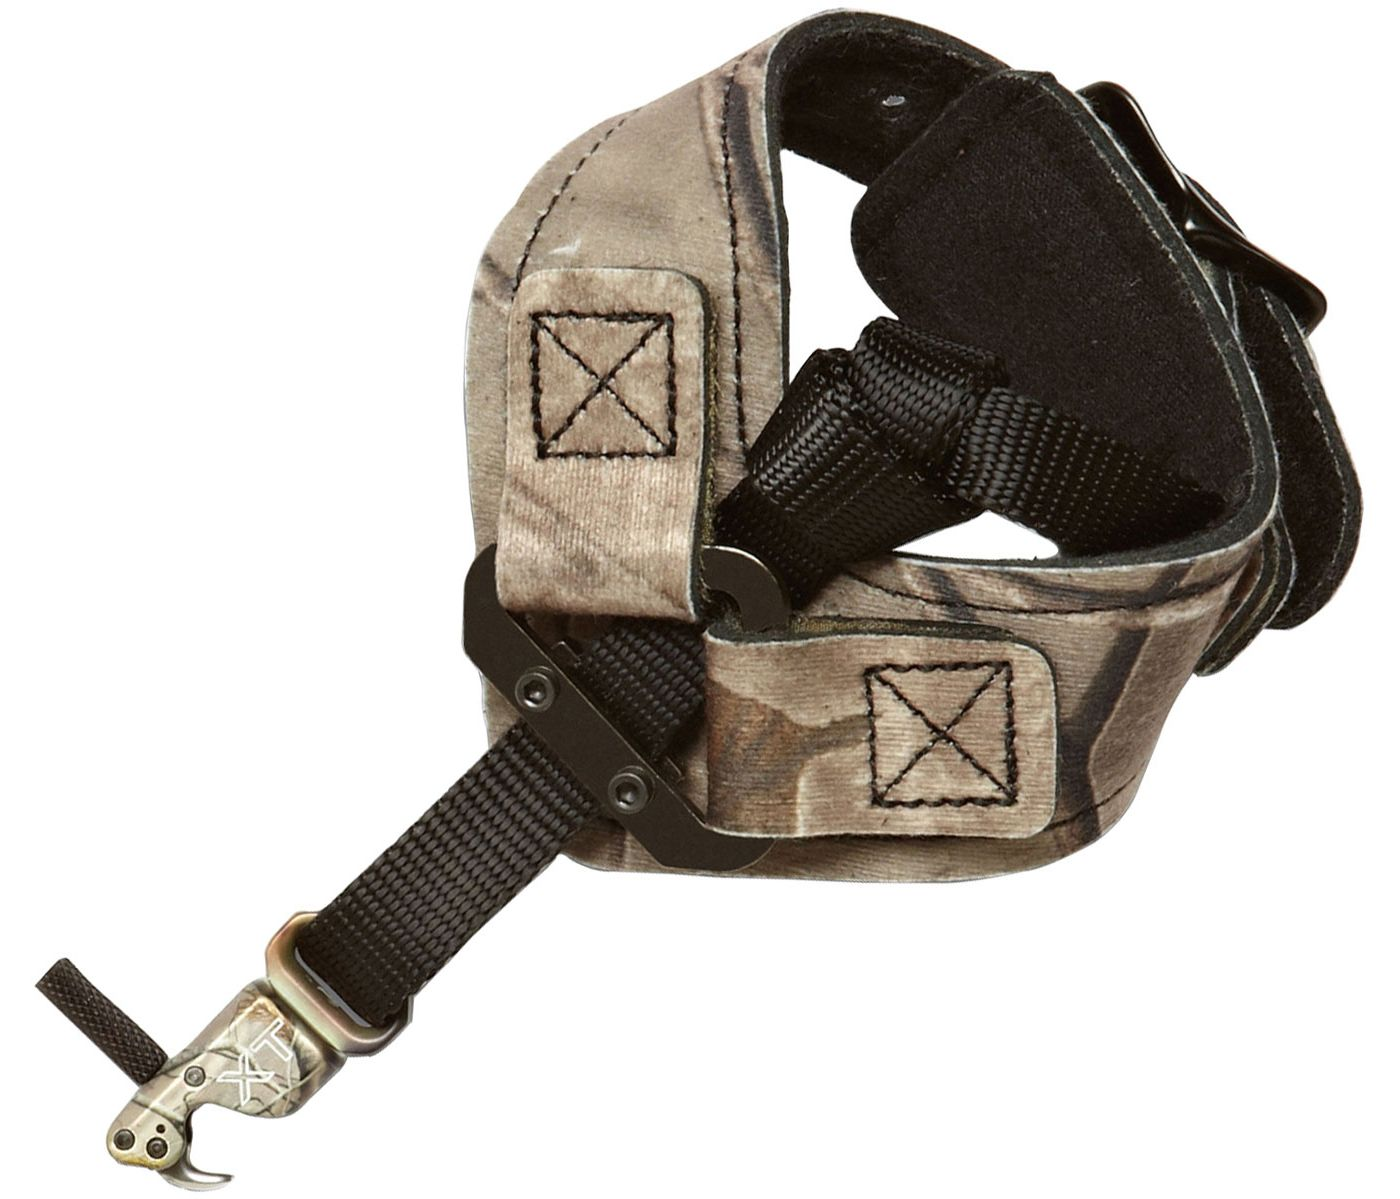 Scott Archery Rhino XT Camo String Loop Buckle Strap Release with Nylon Connector